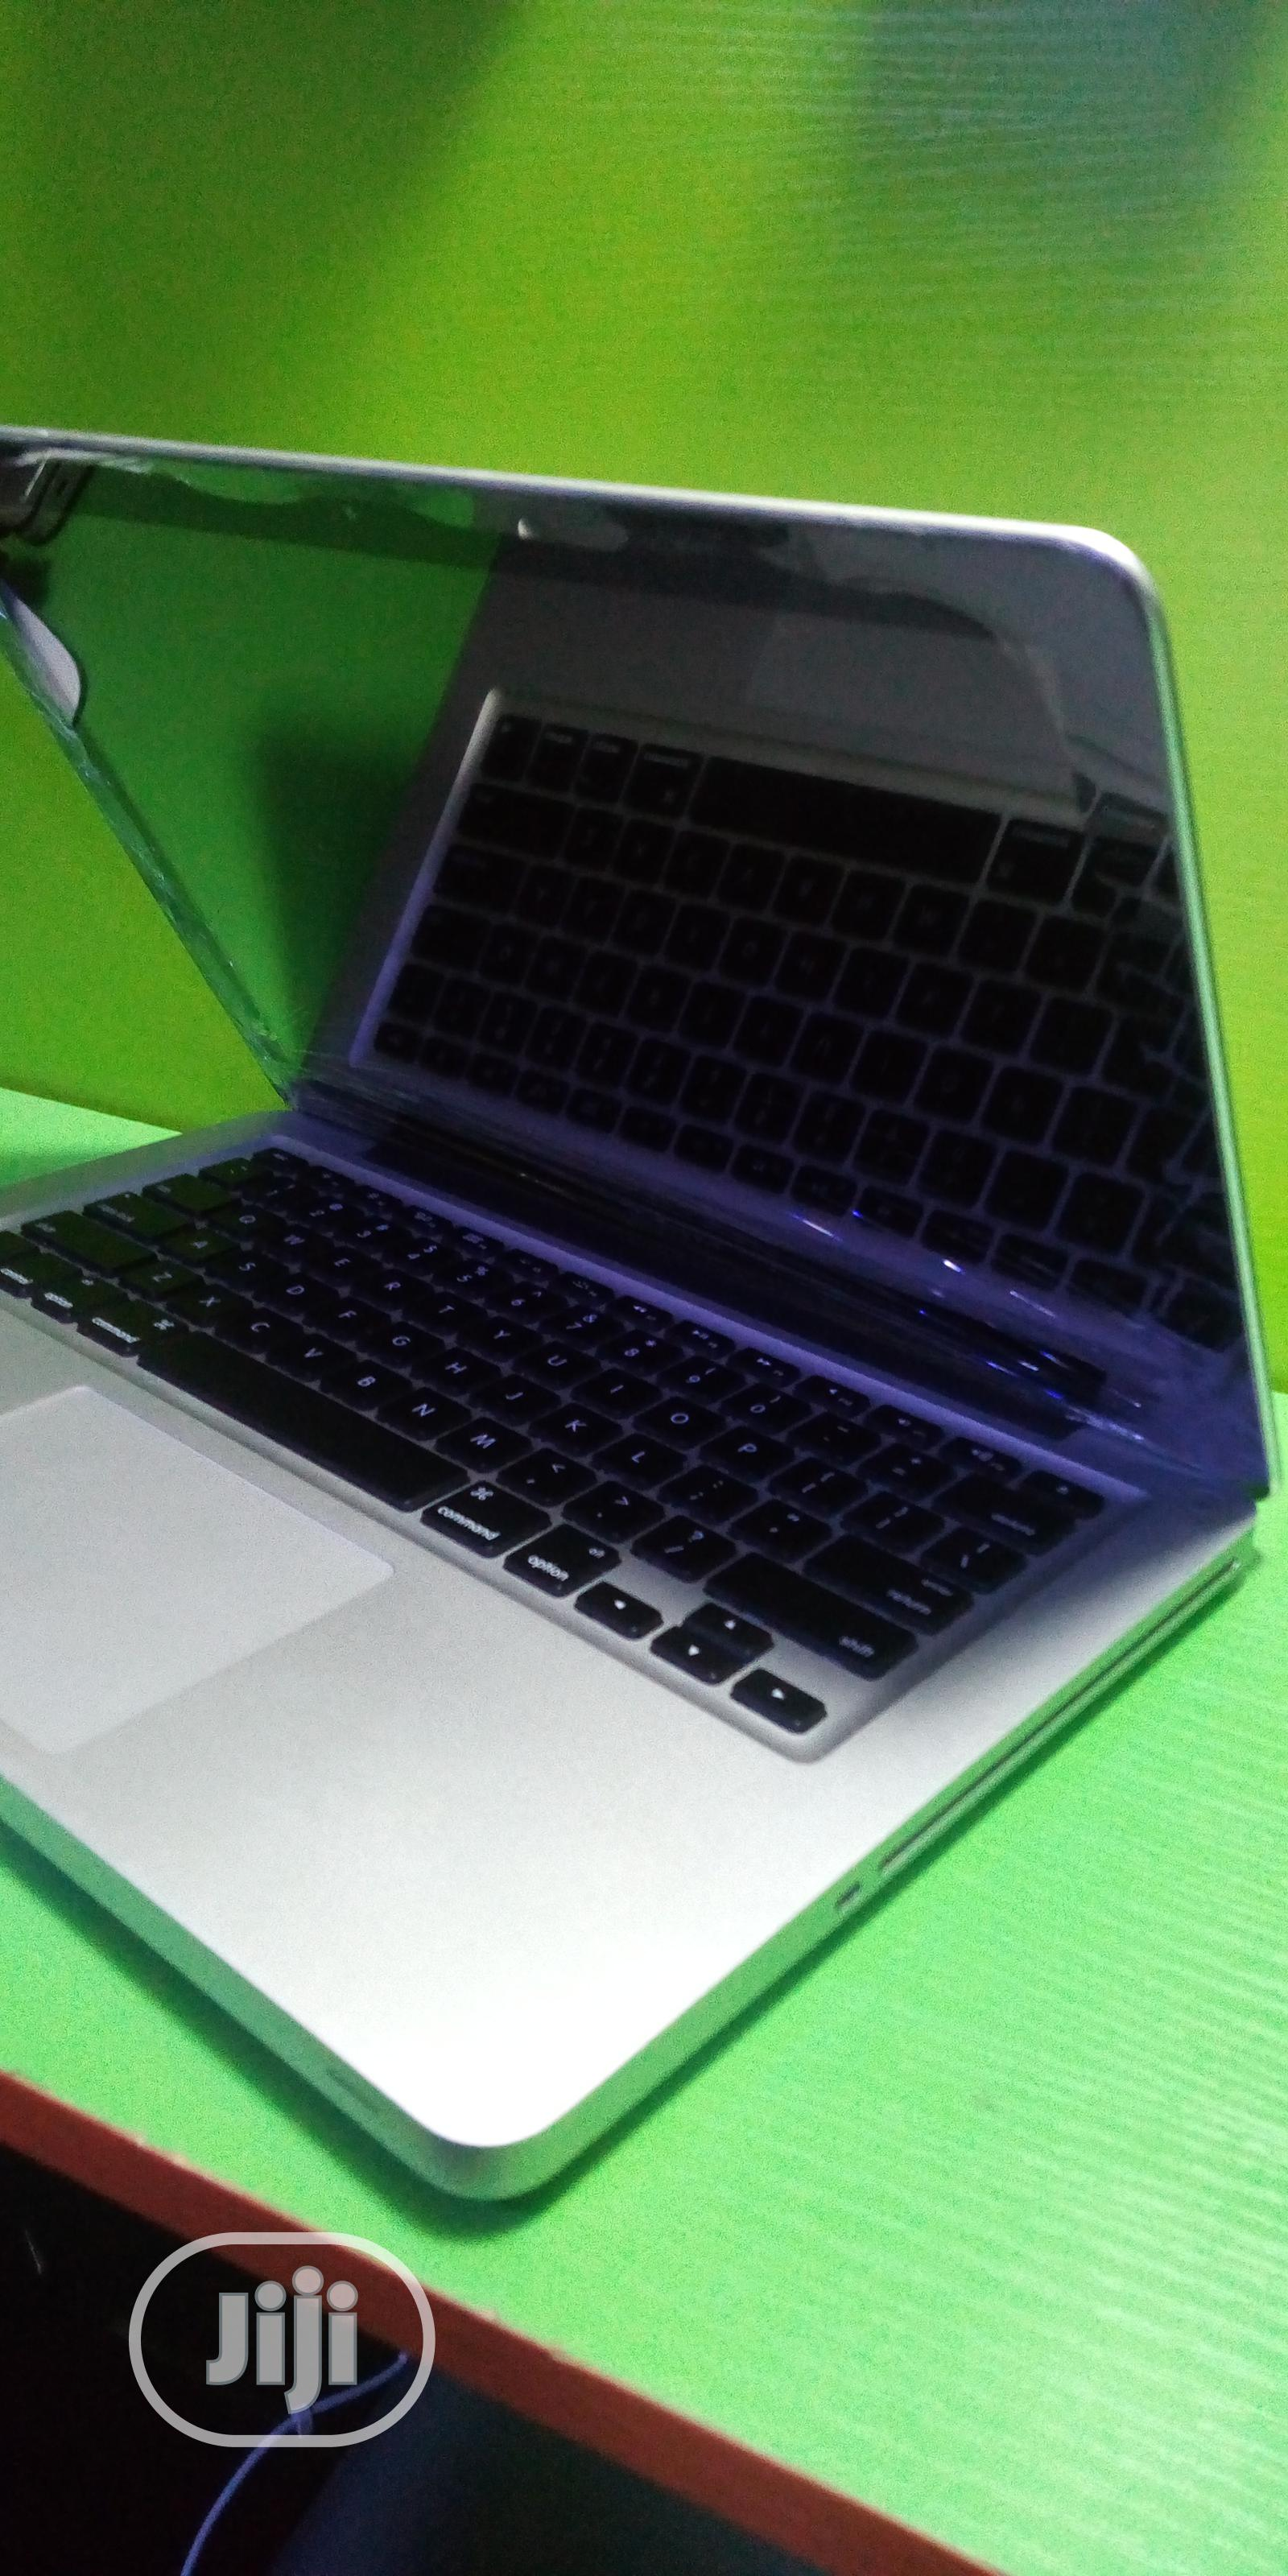 Laptop Apple MacBook 2012 8GB Intel Core i5 HDD 500GB   Laptops & Computers for sale in Apapa, Lagos State, Nigeria